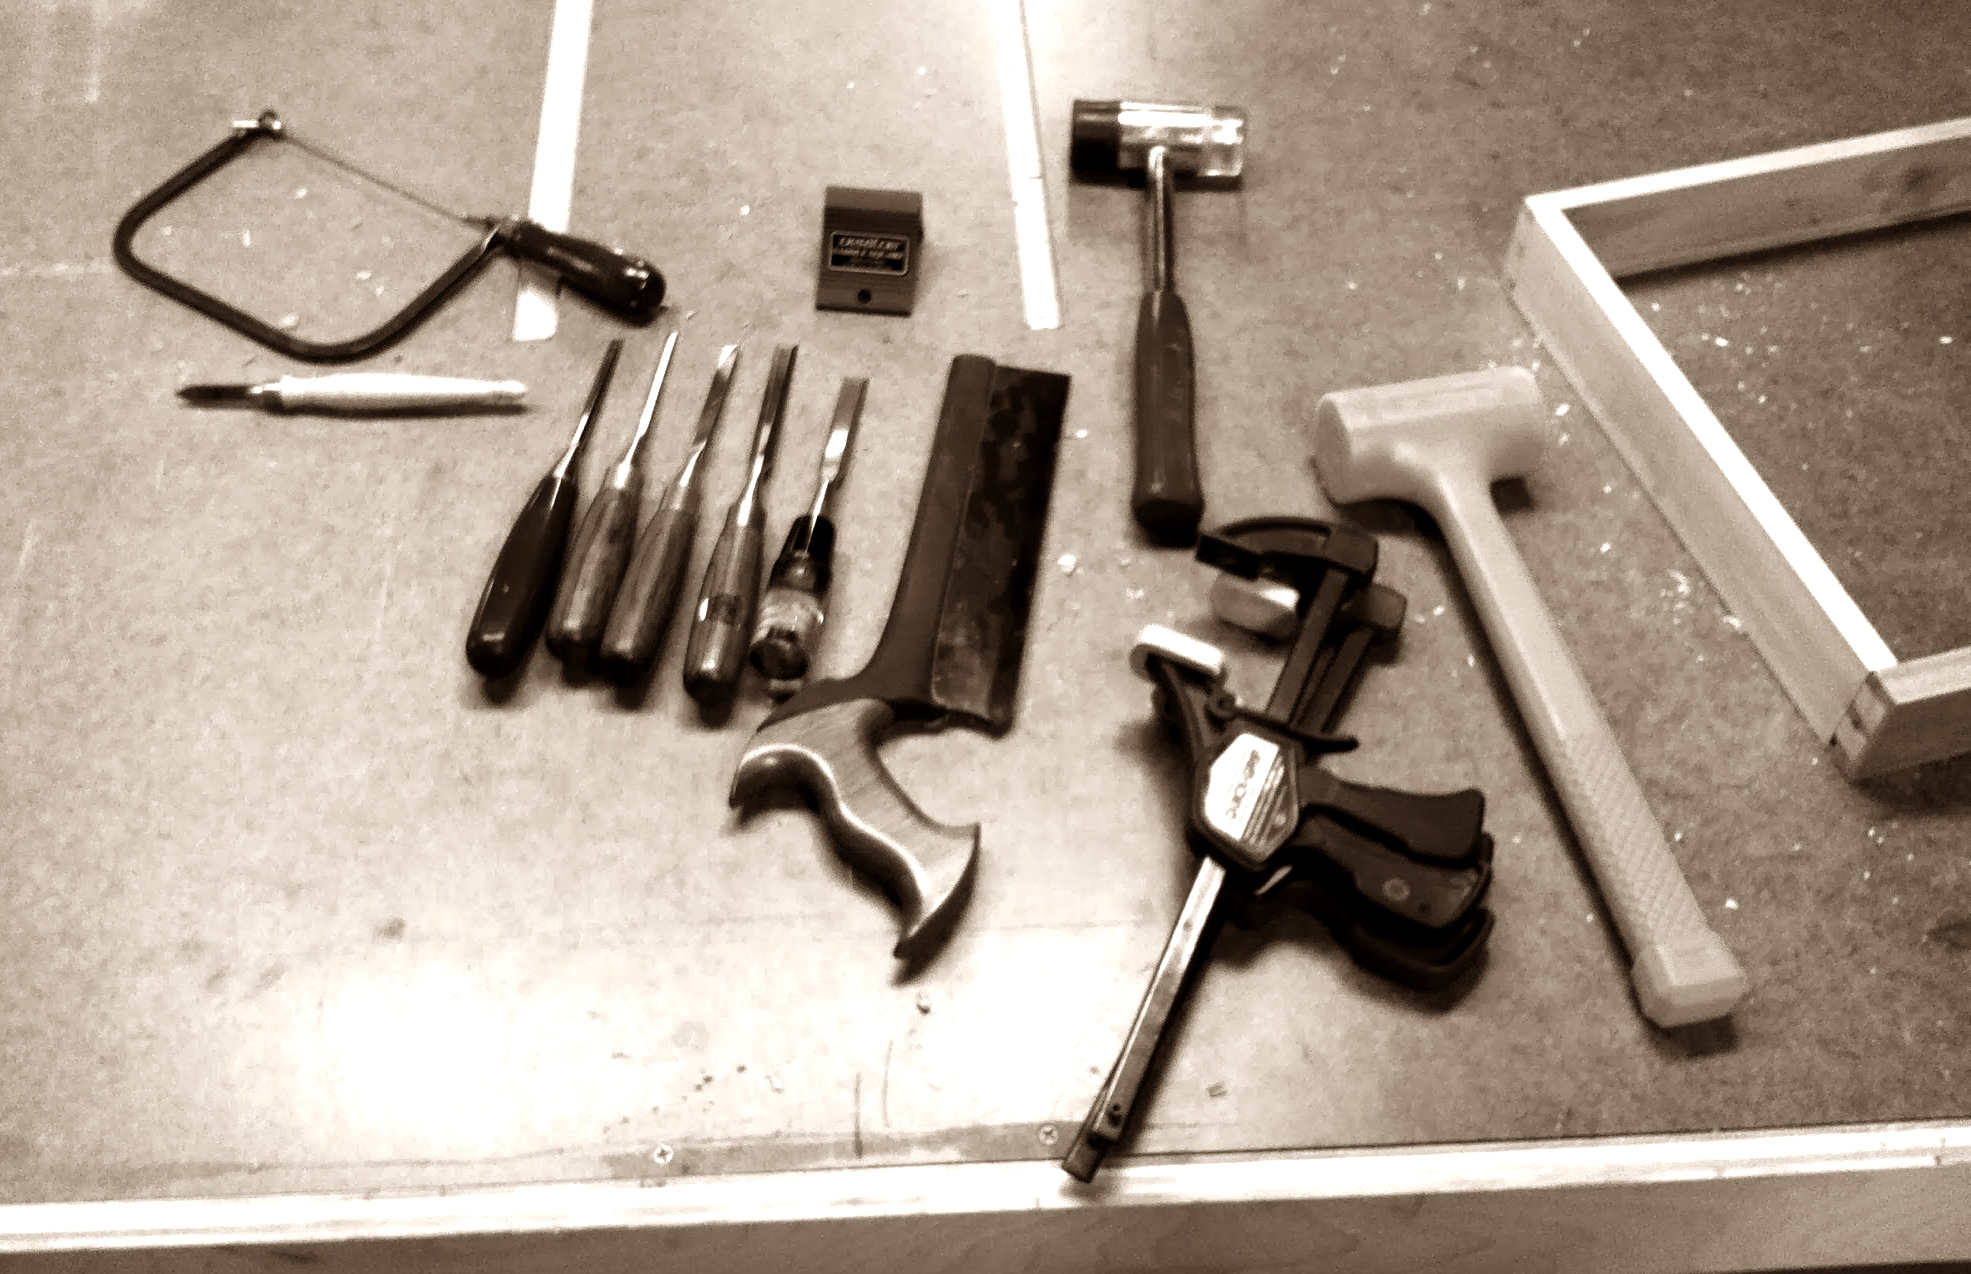 Tools laid out for dovetails